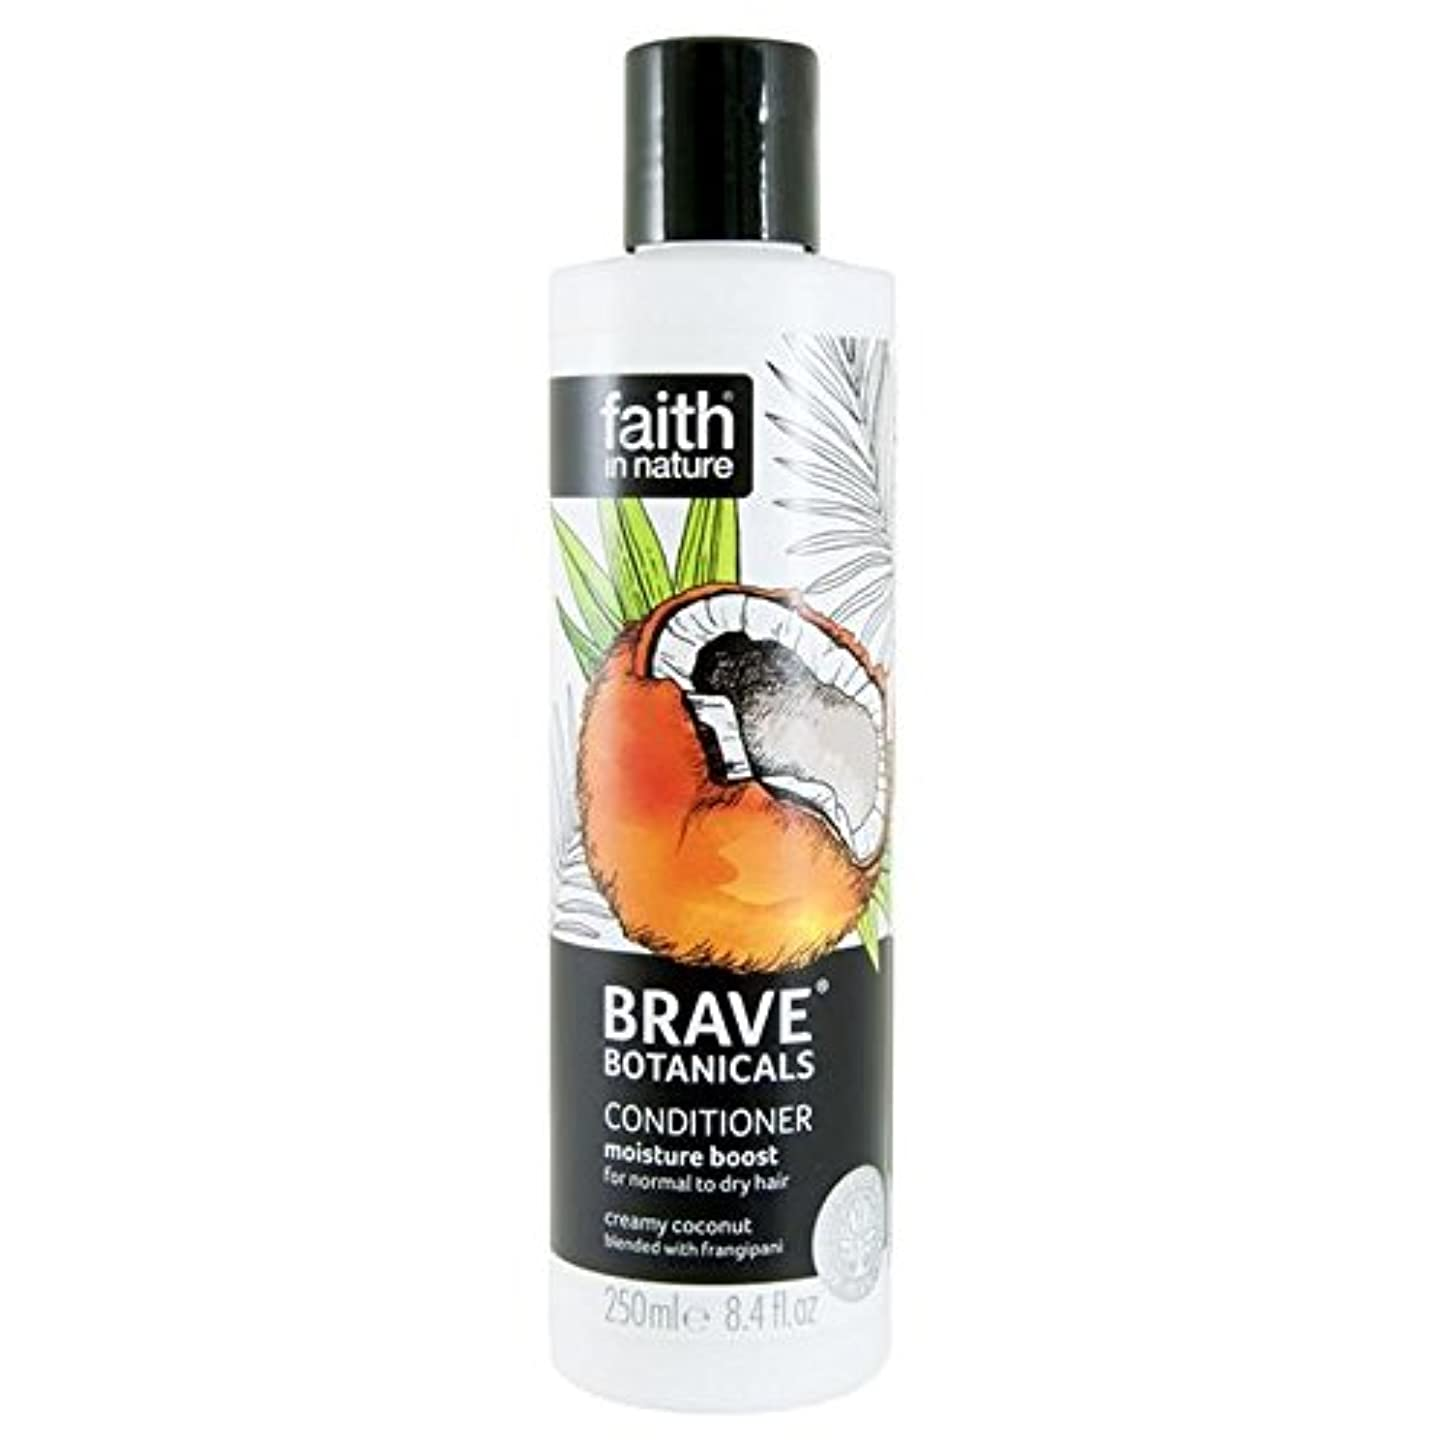 Brave Botanicals Coconut & Frangipani Moisture Boost Conditioner 250ml (Pack of 6) - (Faith In Nature) 勇敢な植物ココナッツ...